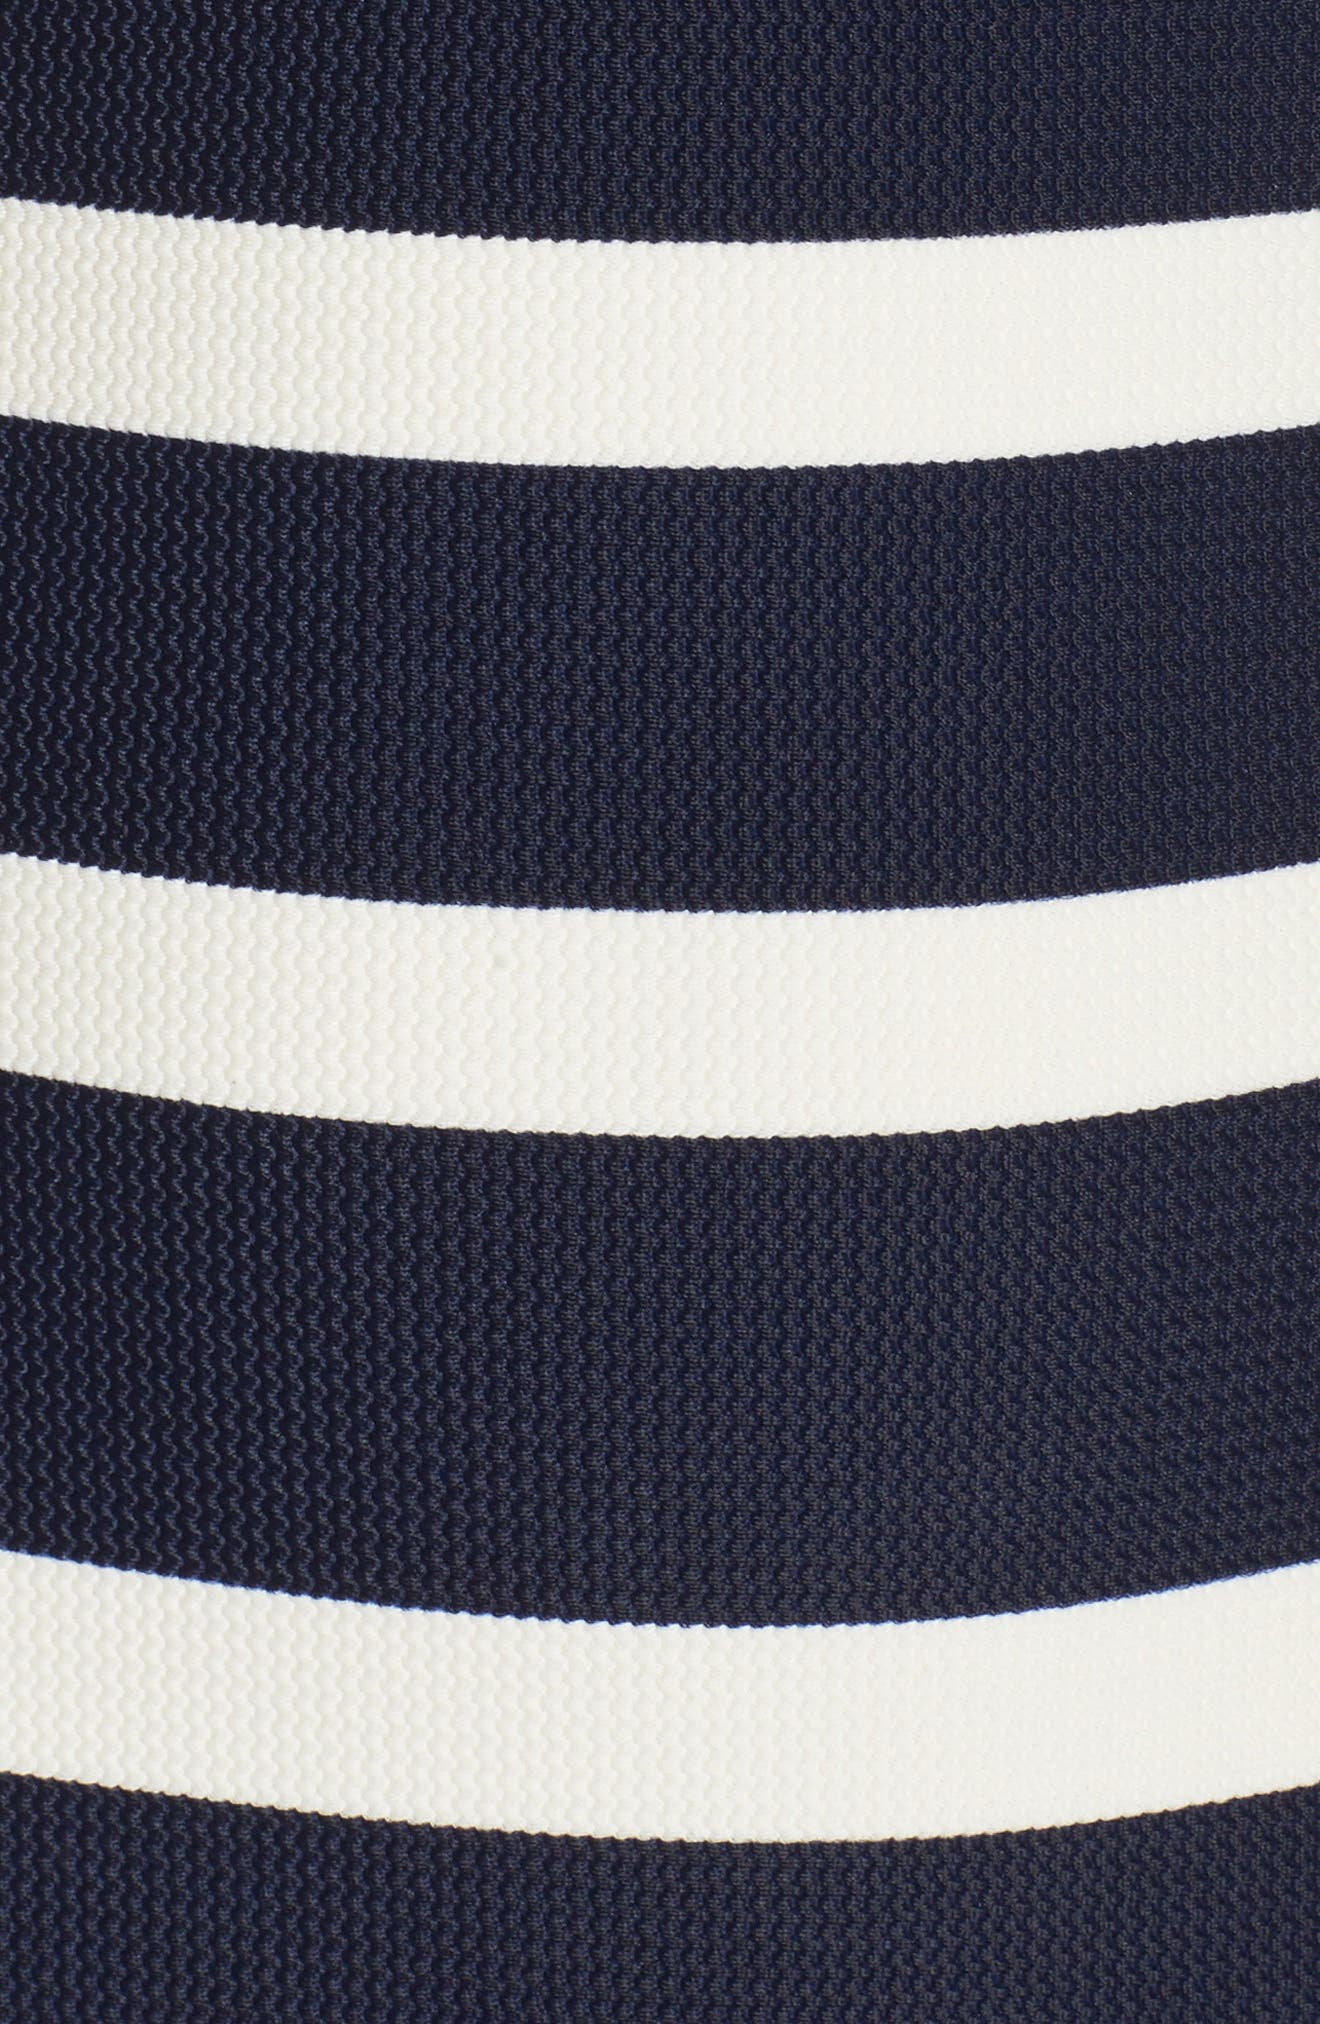 Texture Stripe One-Piece Bandeau Swimsuit,                             Alternate thumbnail 5, color,                             Navy